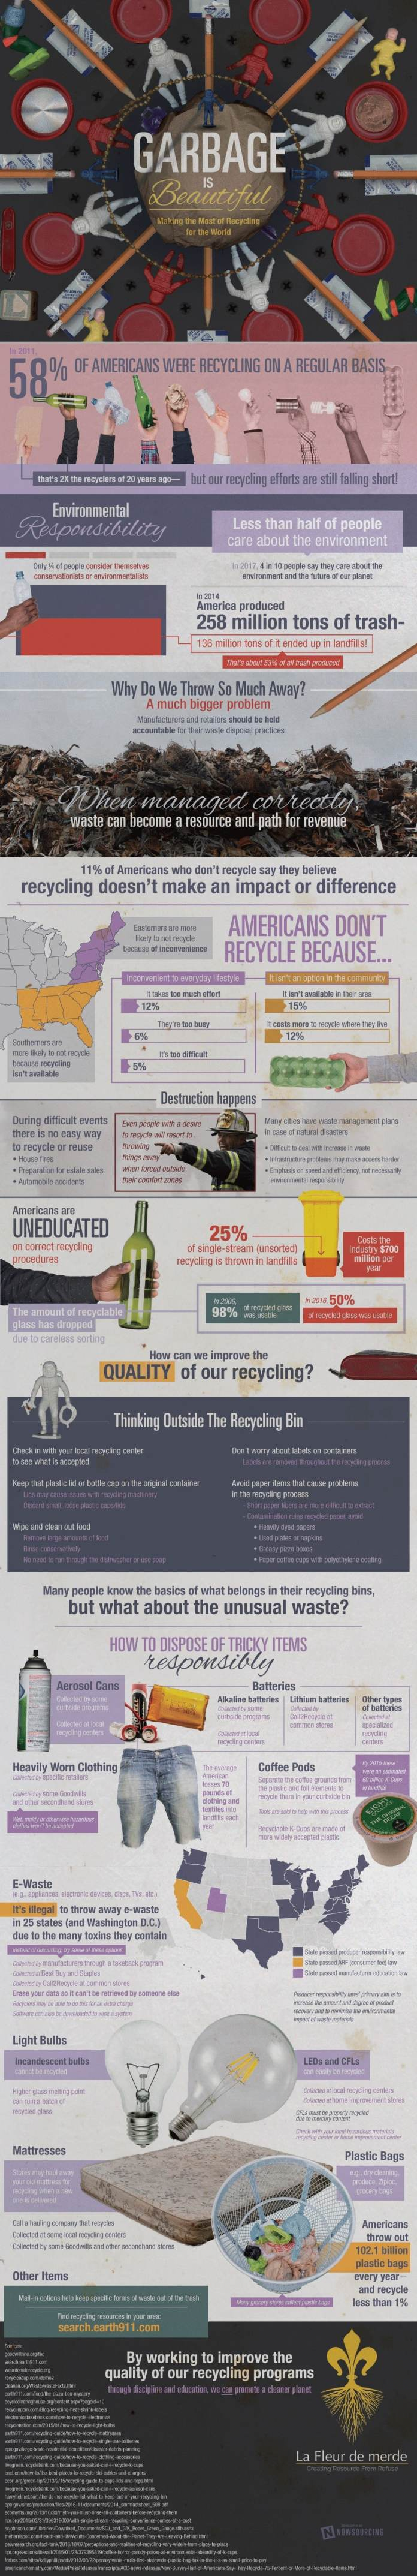 garbage is beautiful infographic